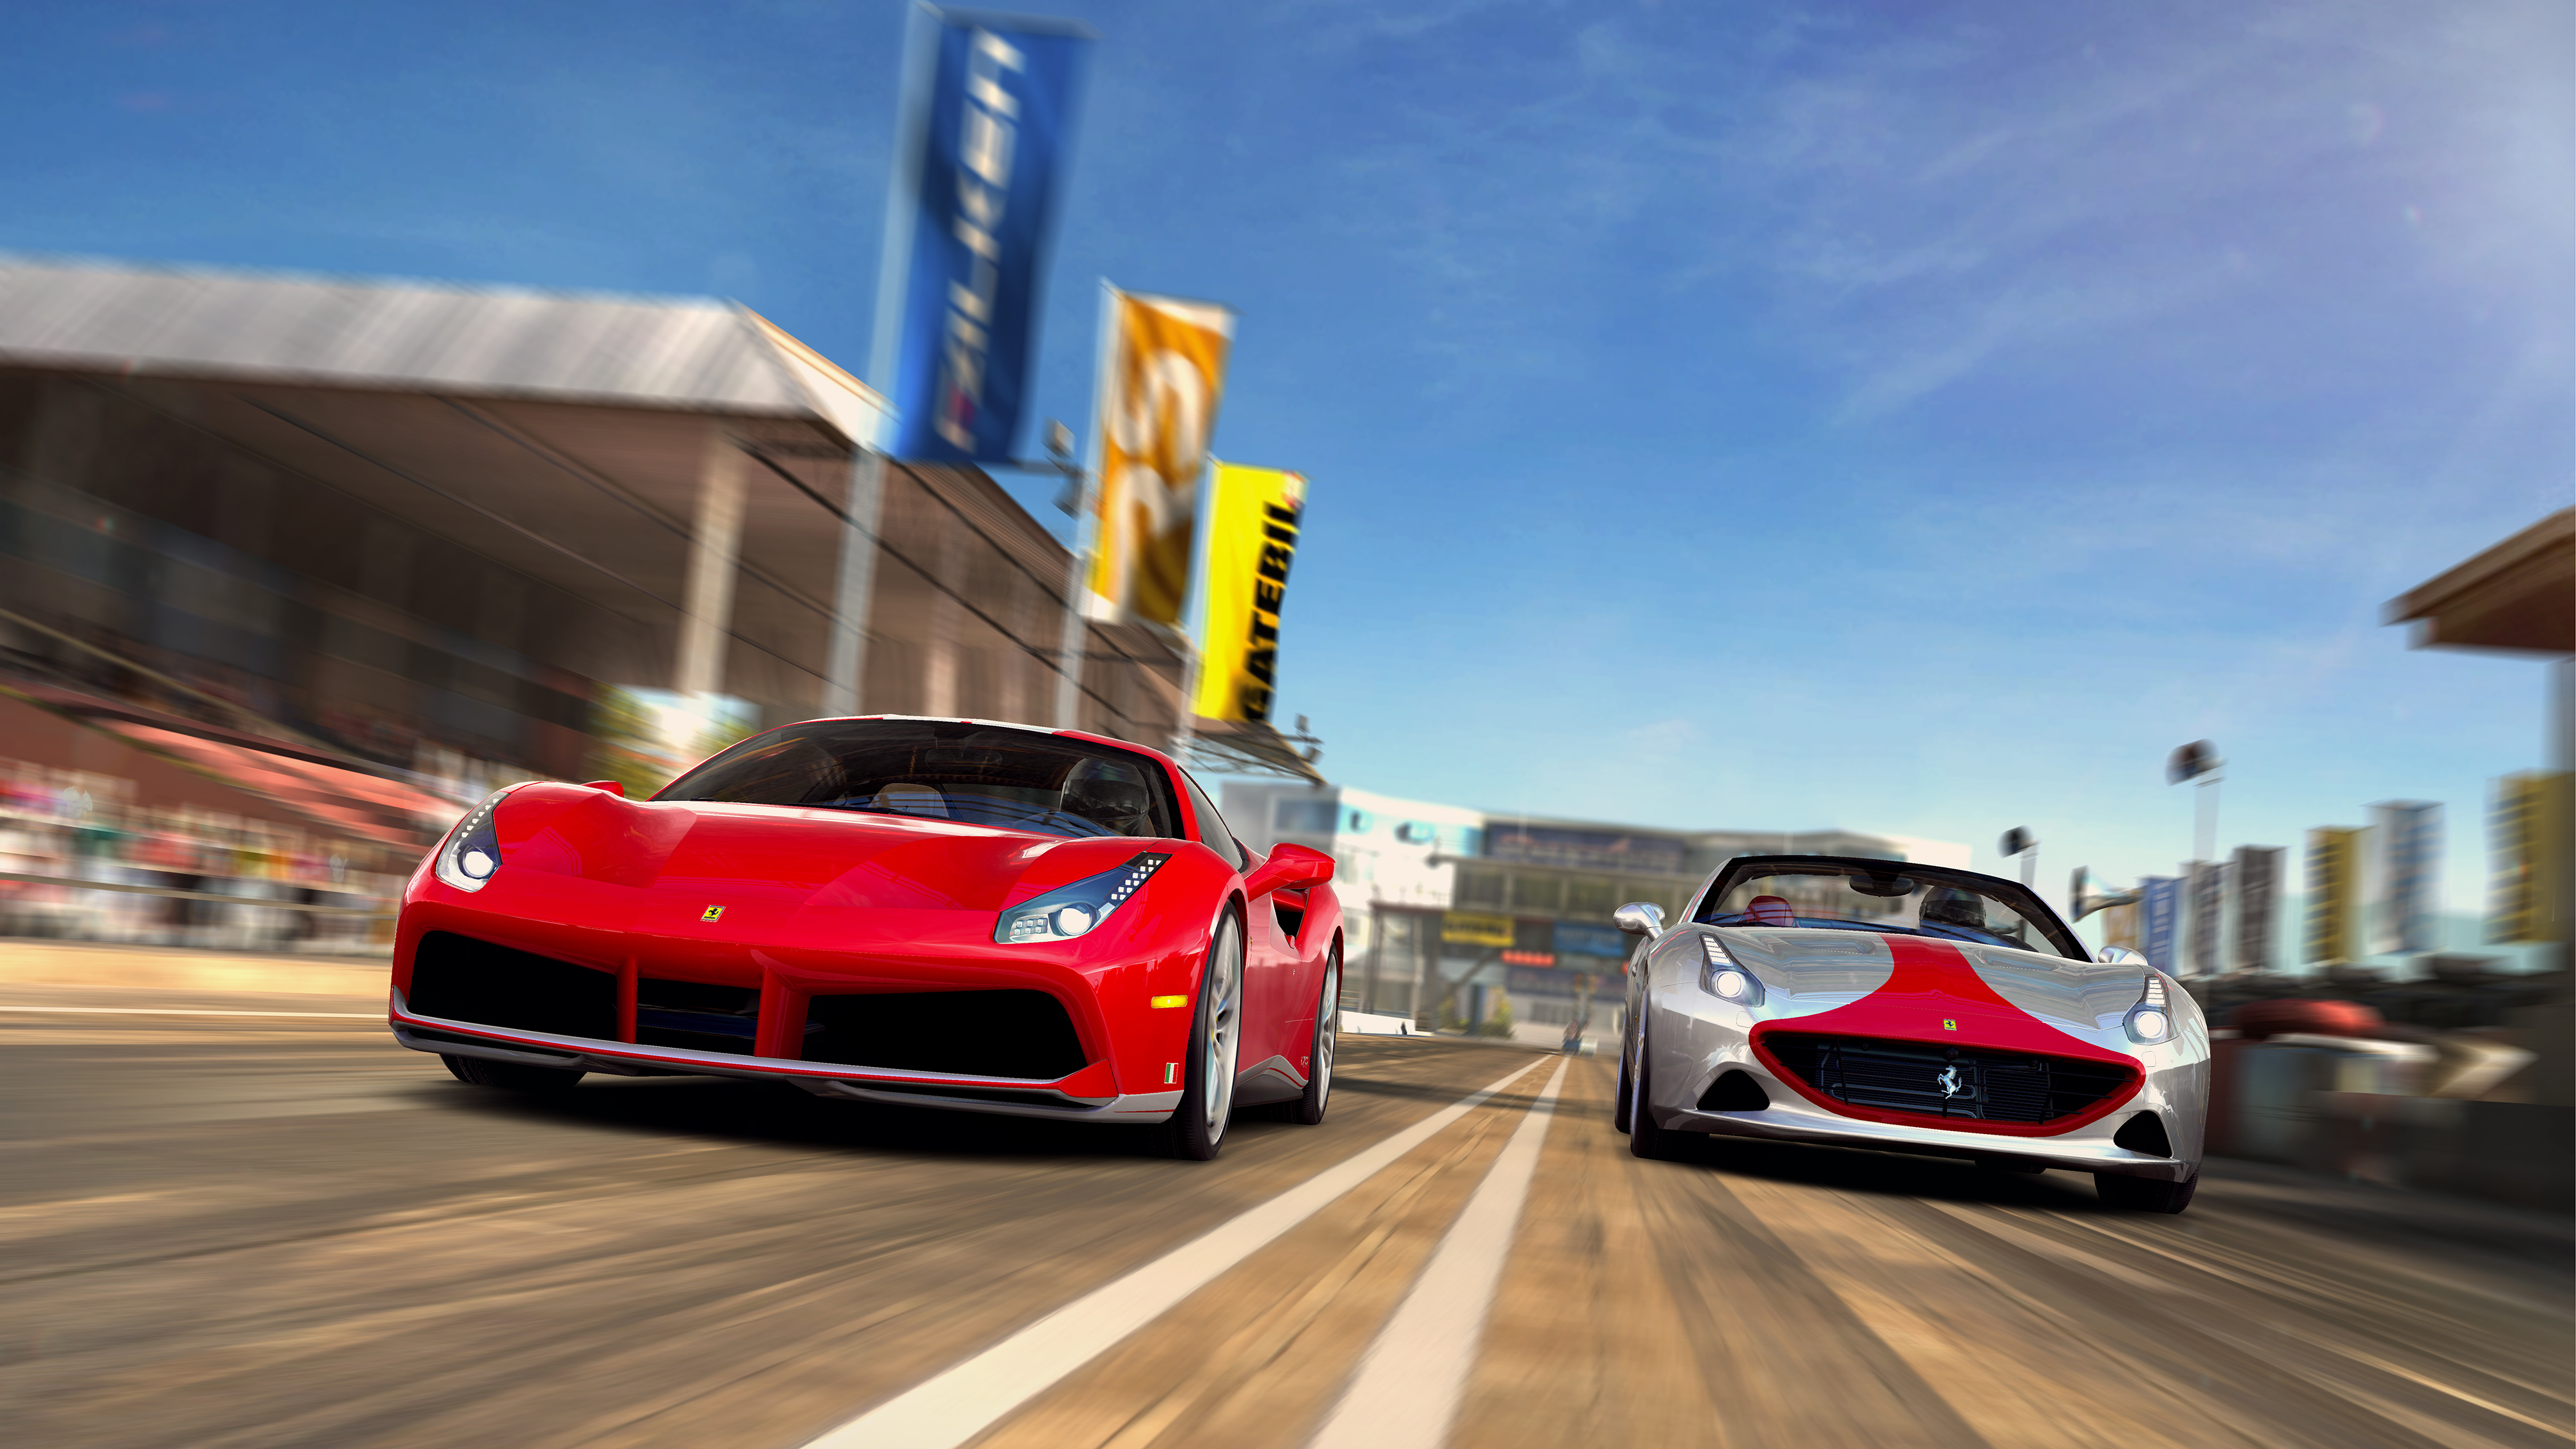 CSR2_Ferrari_488_GTB_vs_Ferrari_California_70th_Anniversary_Shaxstone_Race